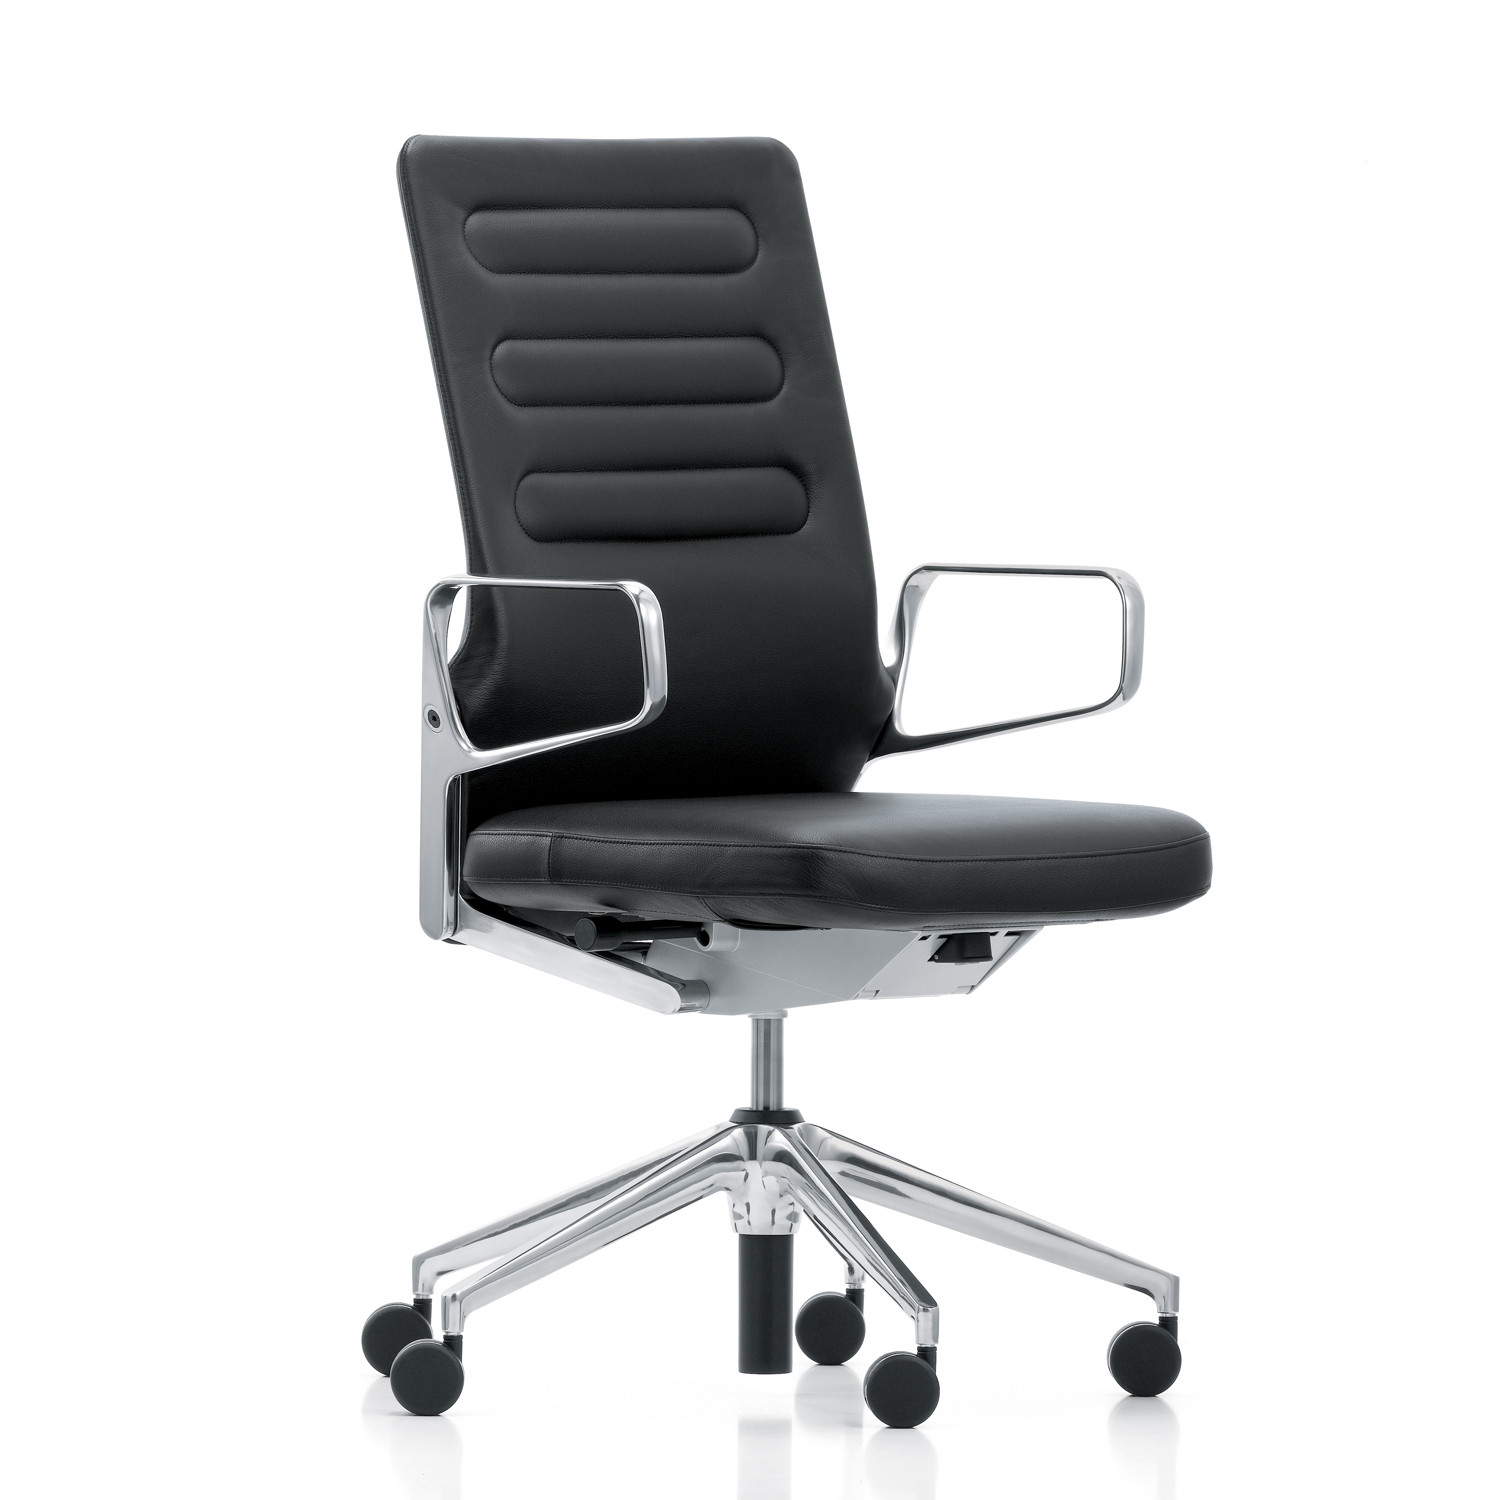 AC 4 Task Chairs